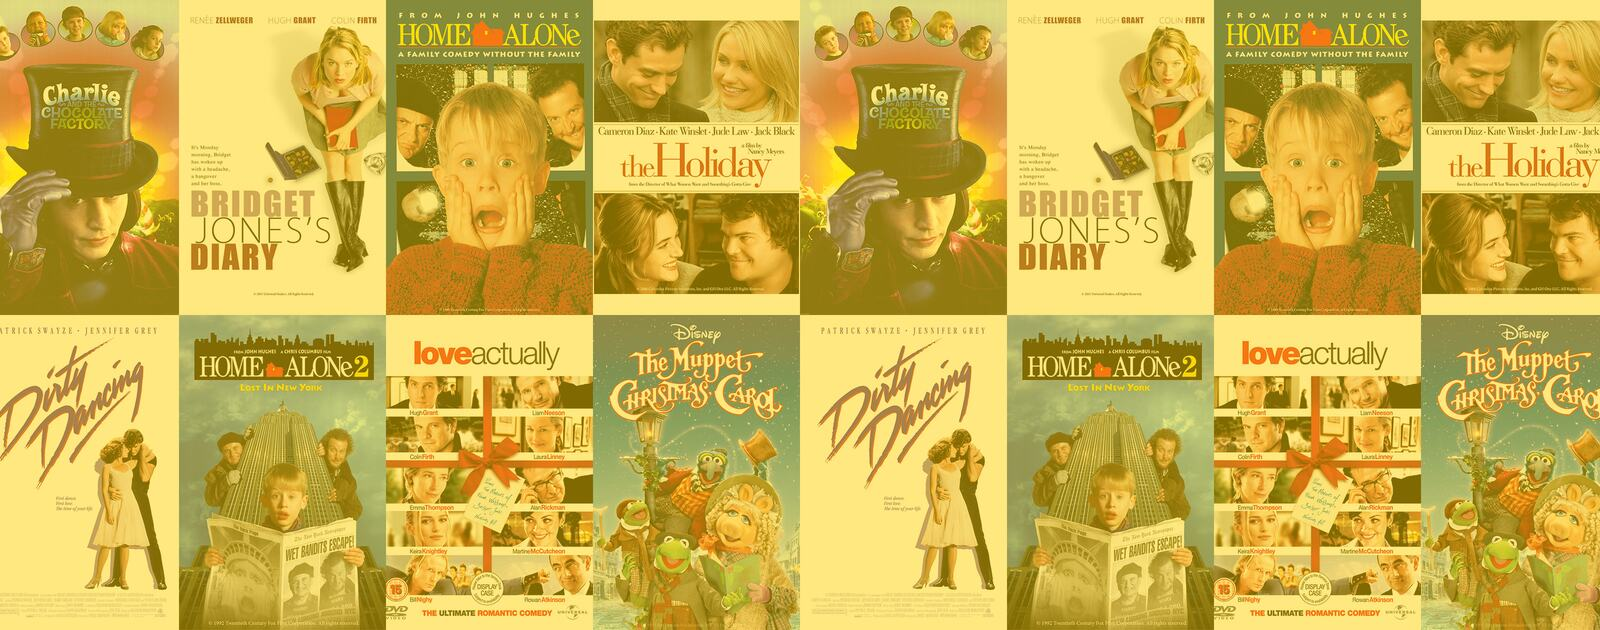 A montage of film posters for Bridget Jones' Diary, Home Alone, Love Actually, Charlie and the Chocolate Factory, Home Alone 2, The Holiday, The Muppet Christmas Carol, Dirty Dancing